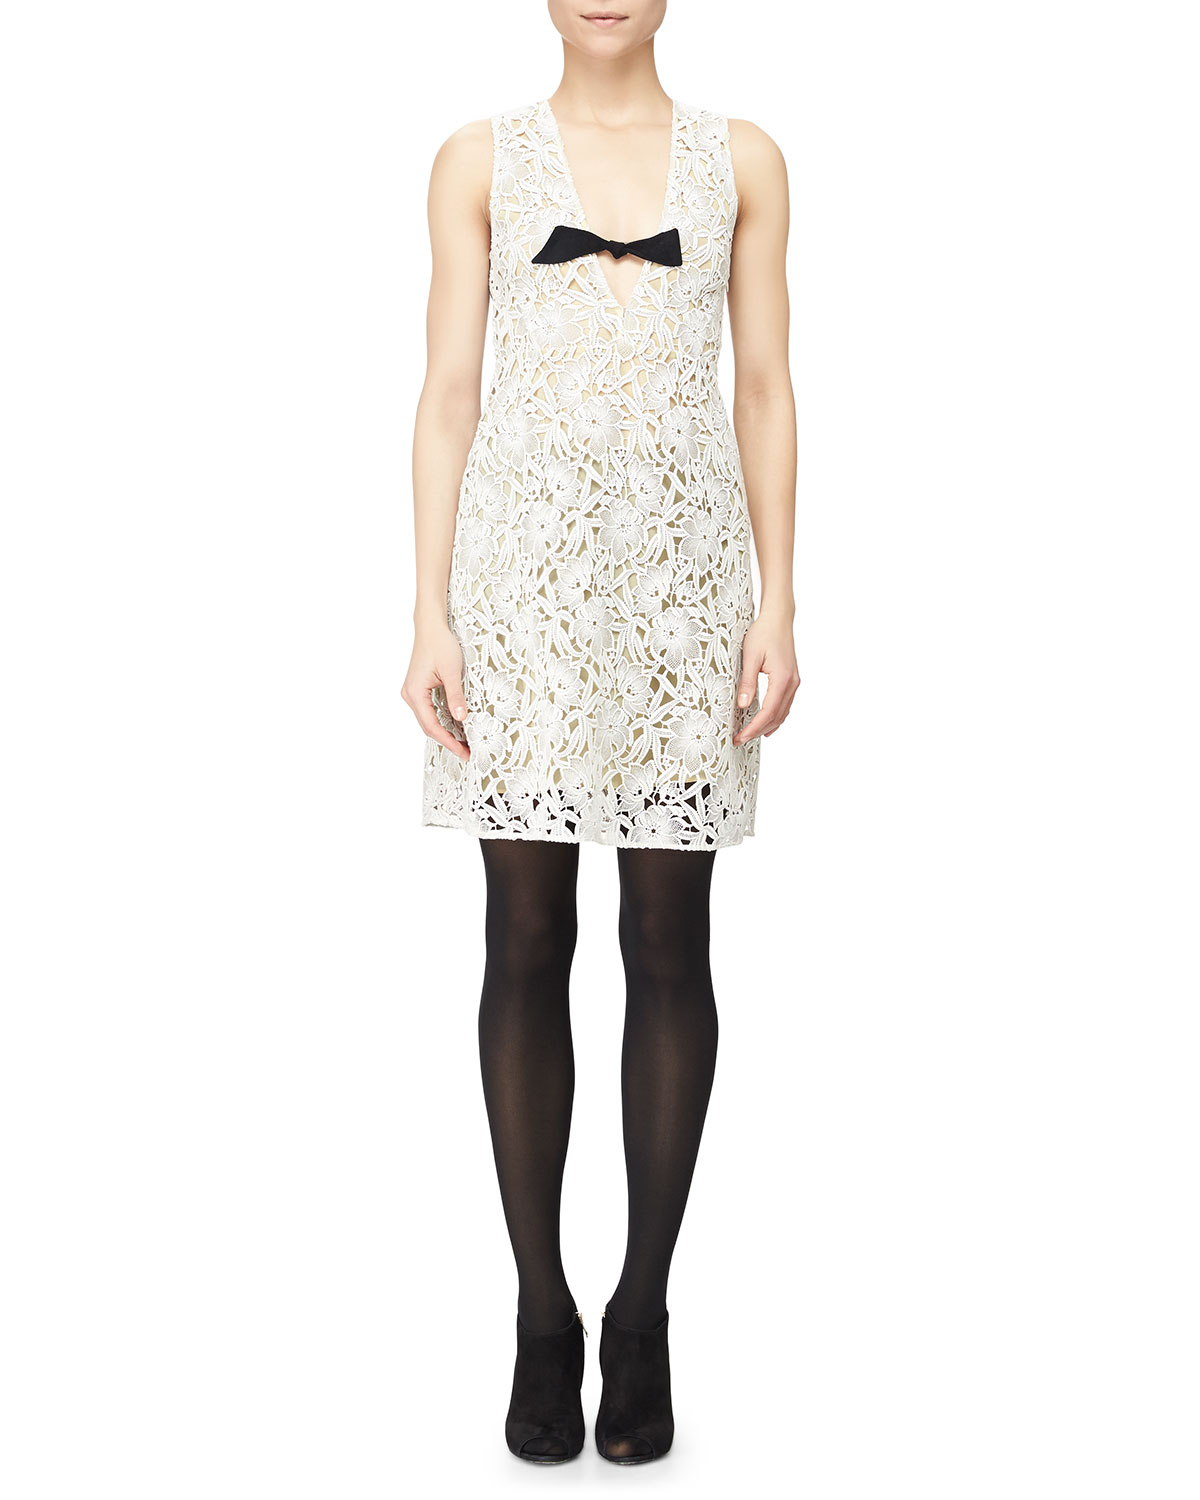 Floral Macrame Lace Dress w/ Bow, White